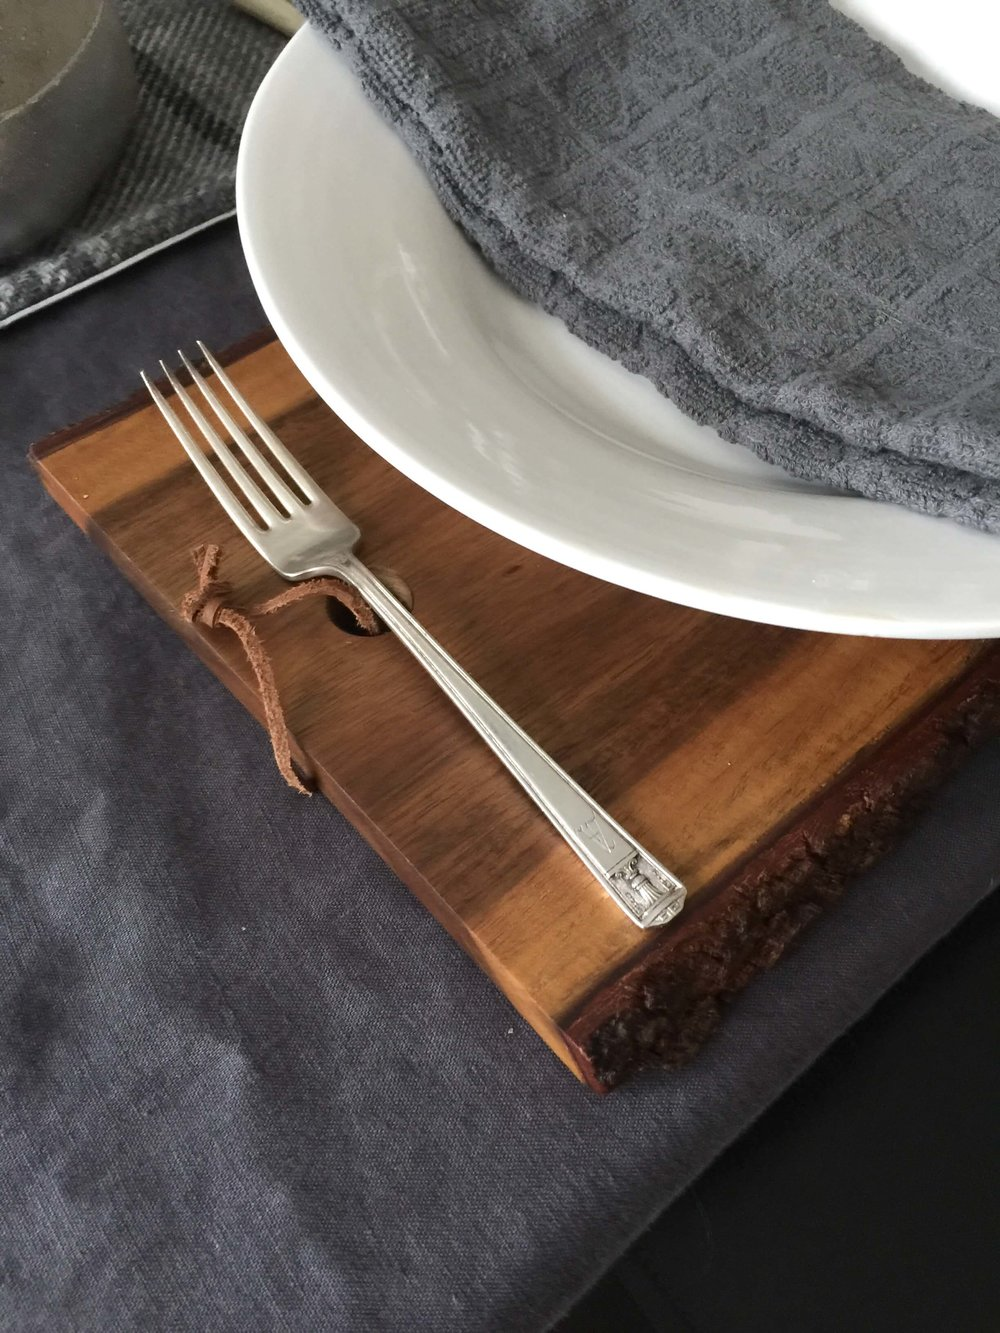 Winter tabletop with live edge cutting board and silver flatware | Carla Aston